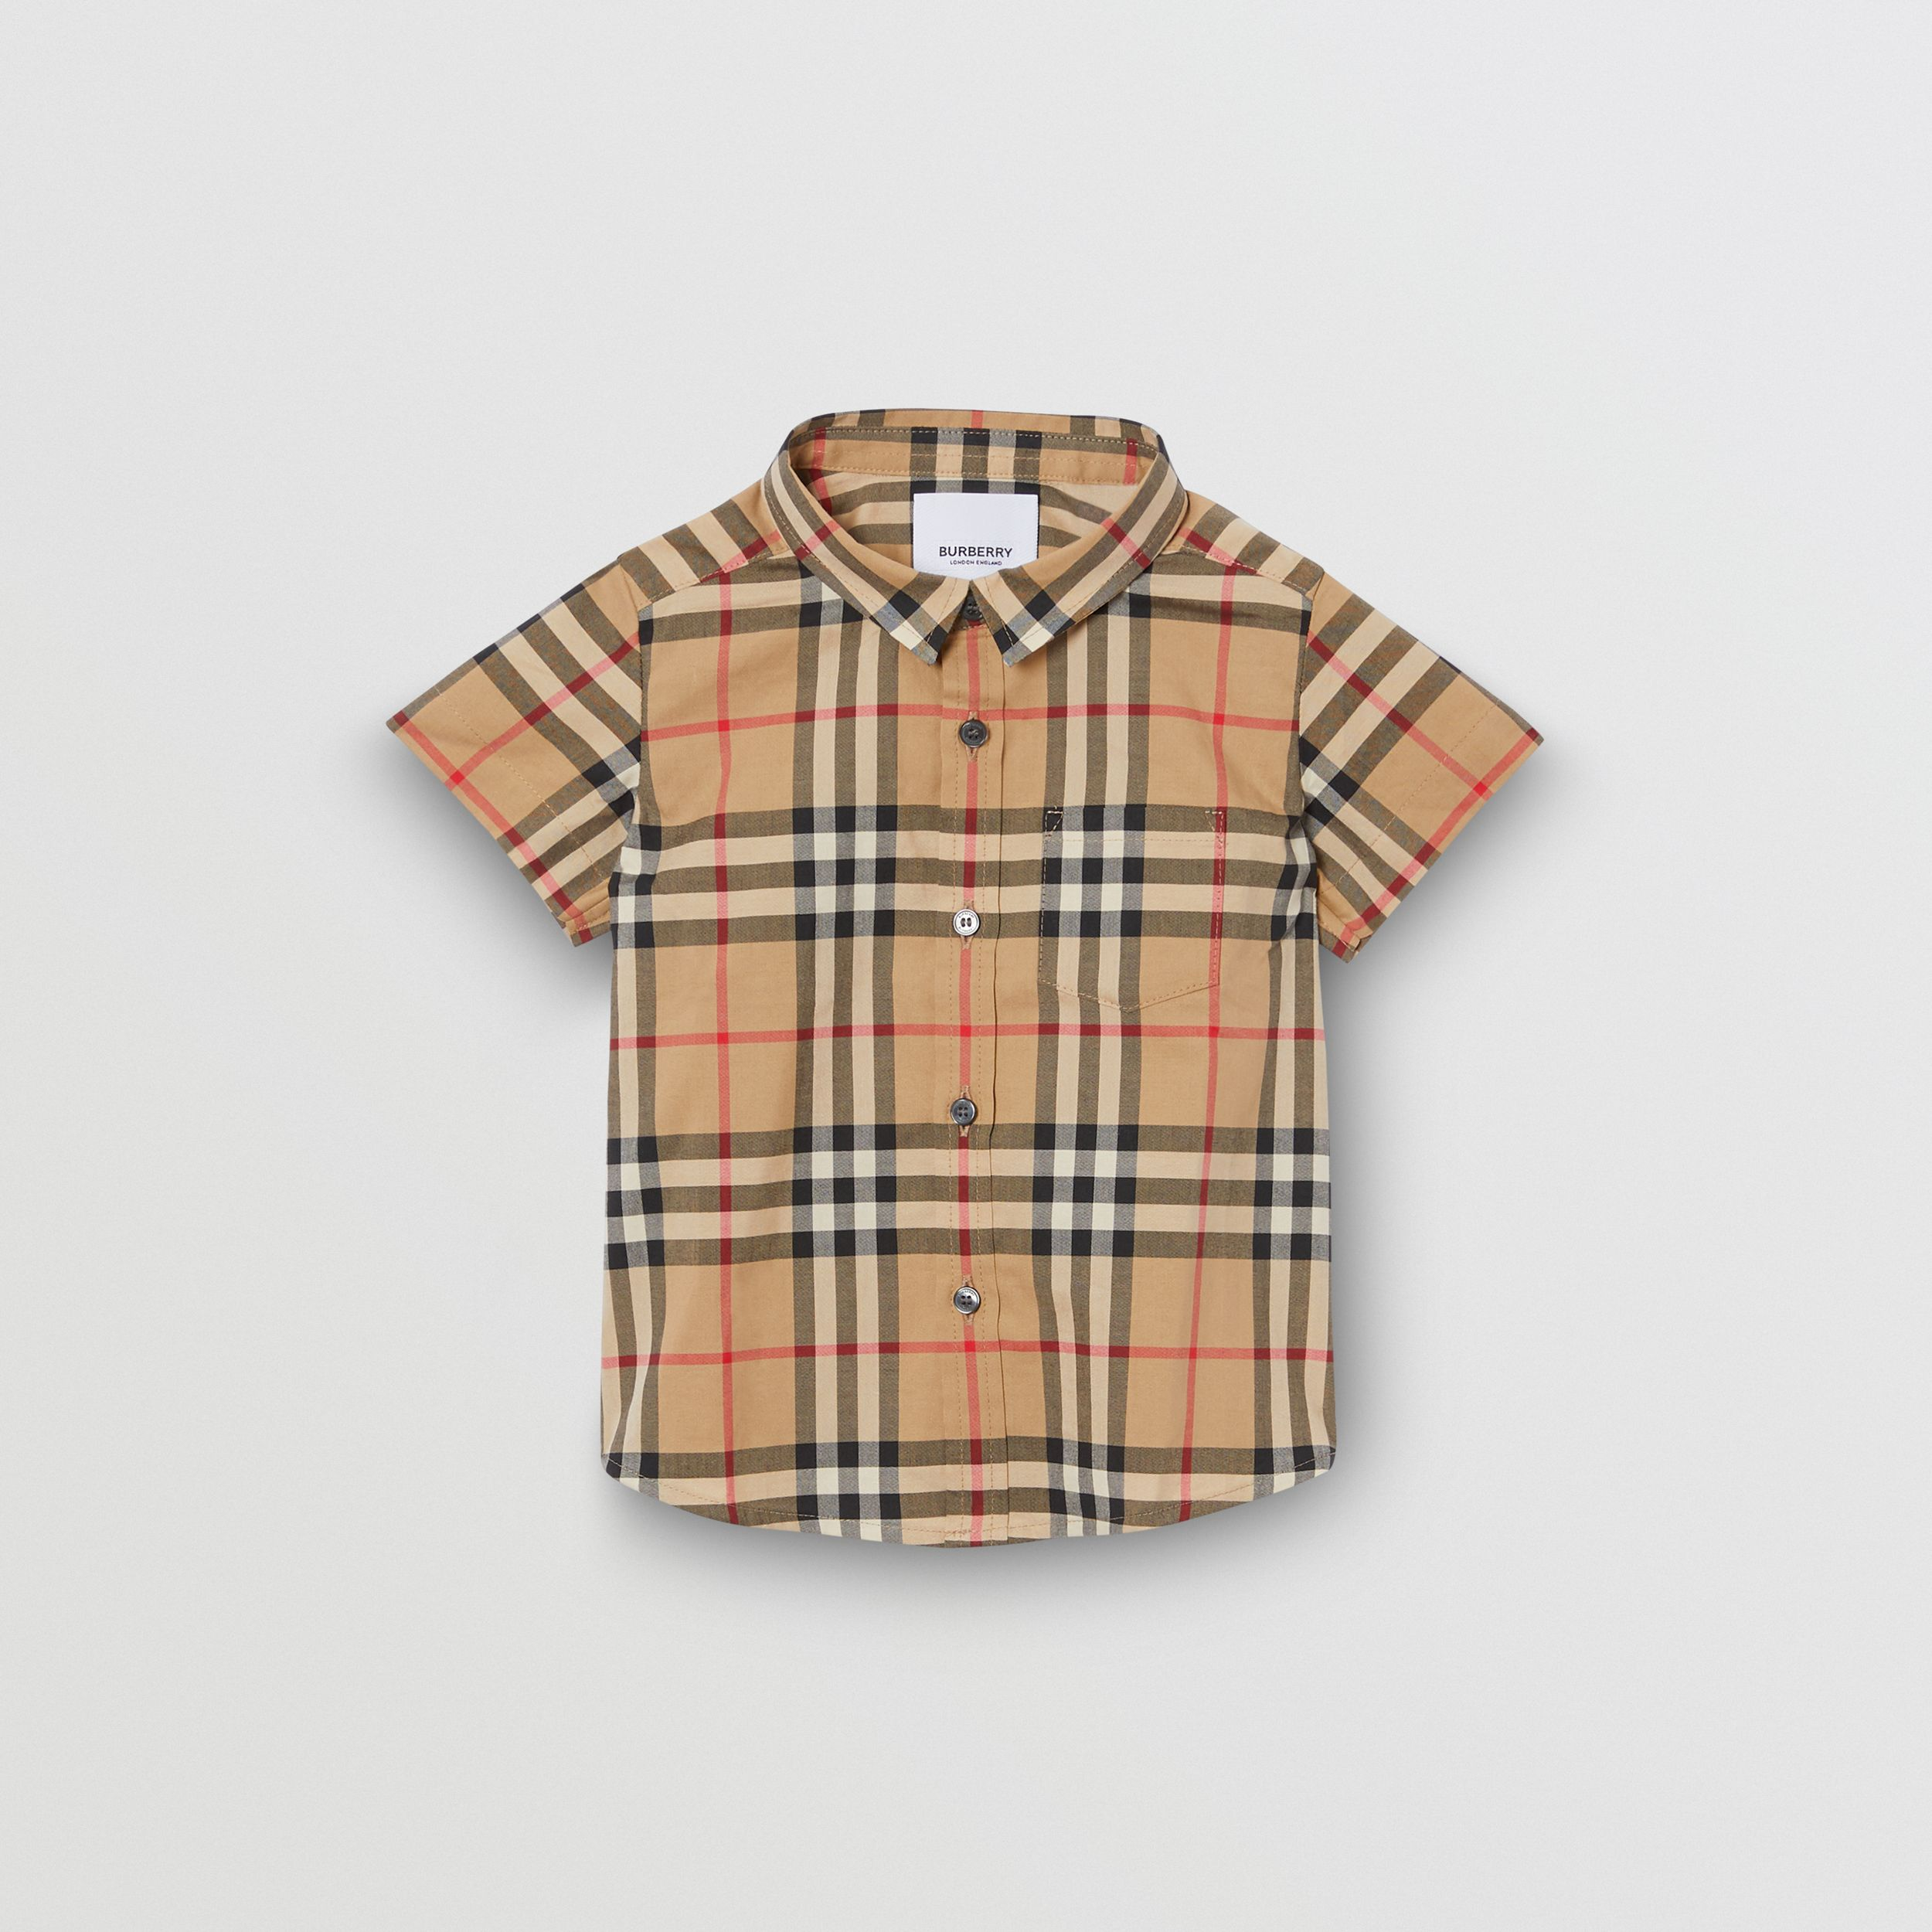 Short-sleeve Vintage Check Cotton Shirt in Archive Beige - Children | Burberry - 1